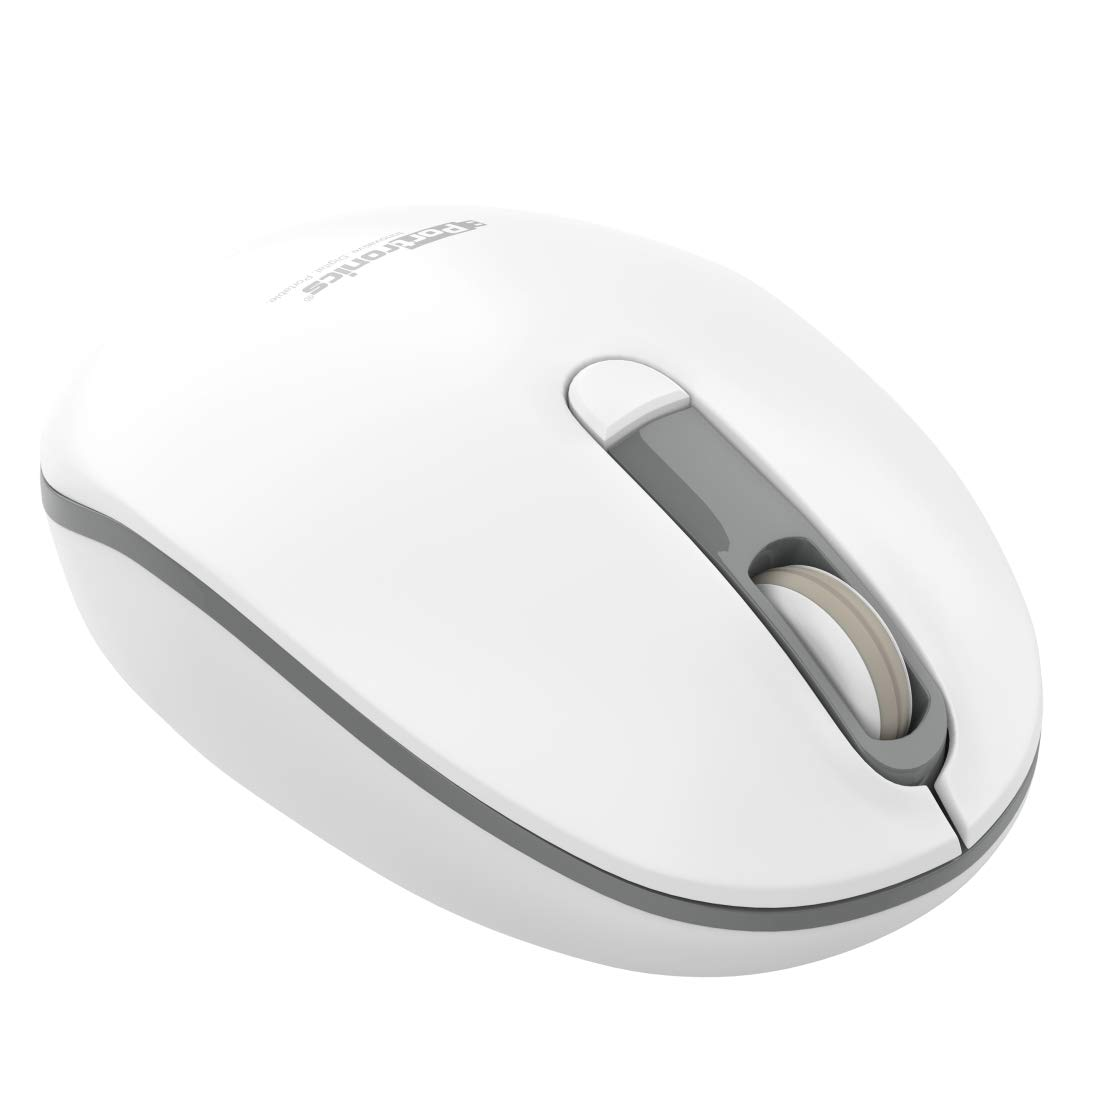 Portronics Toad 11 Wireless Mouse with 2.4GHz Technology